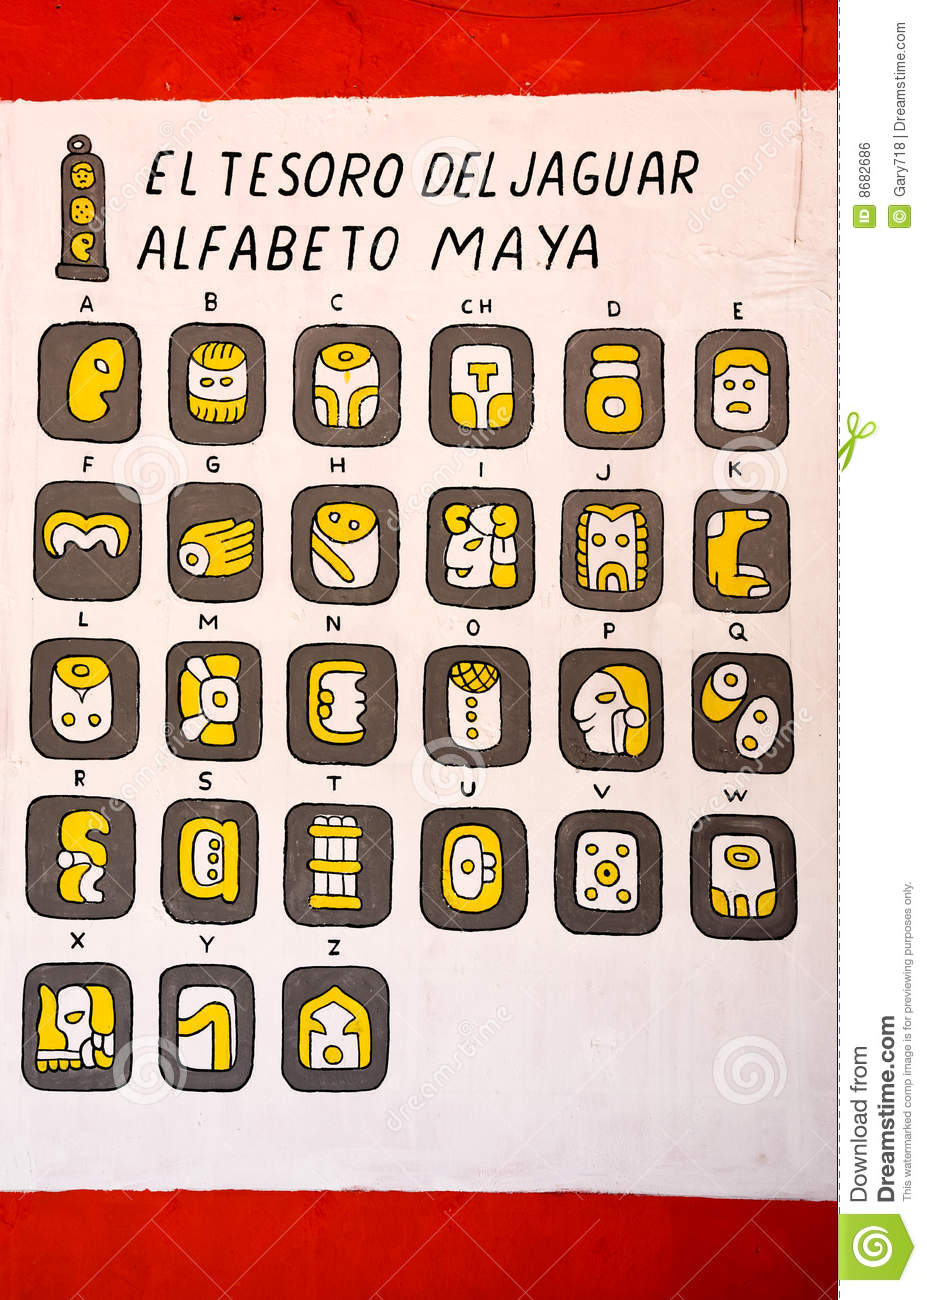 Mayan Hieroglyphics Alphabet For Kids Mayan alphabets on the wall of